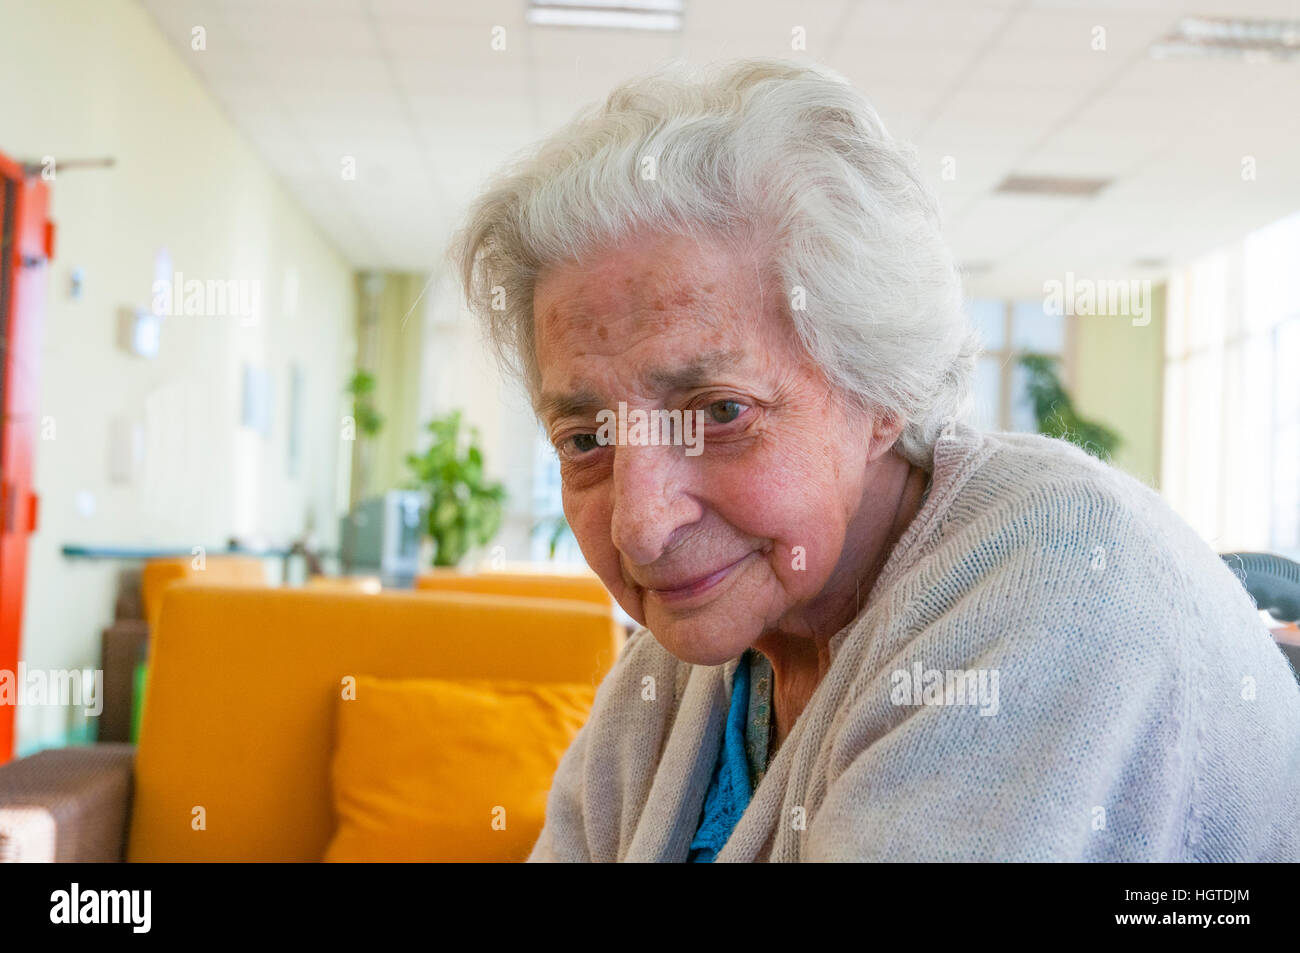 Portrait of elderly woman smiling and looking at the camera. - Stock Image